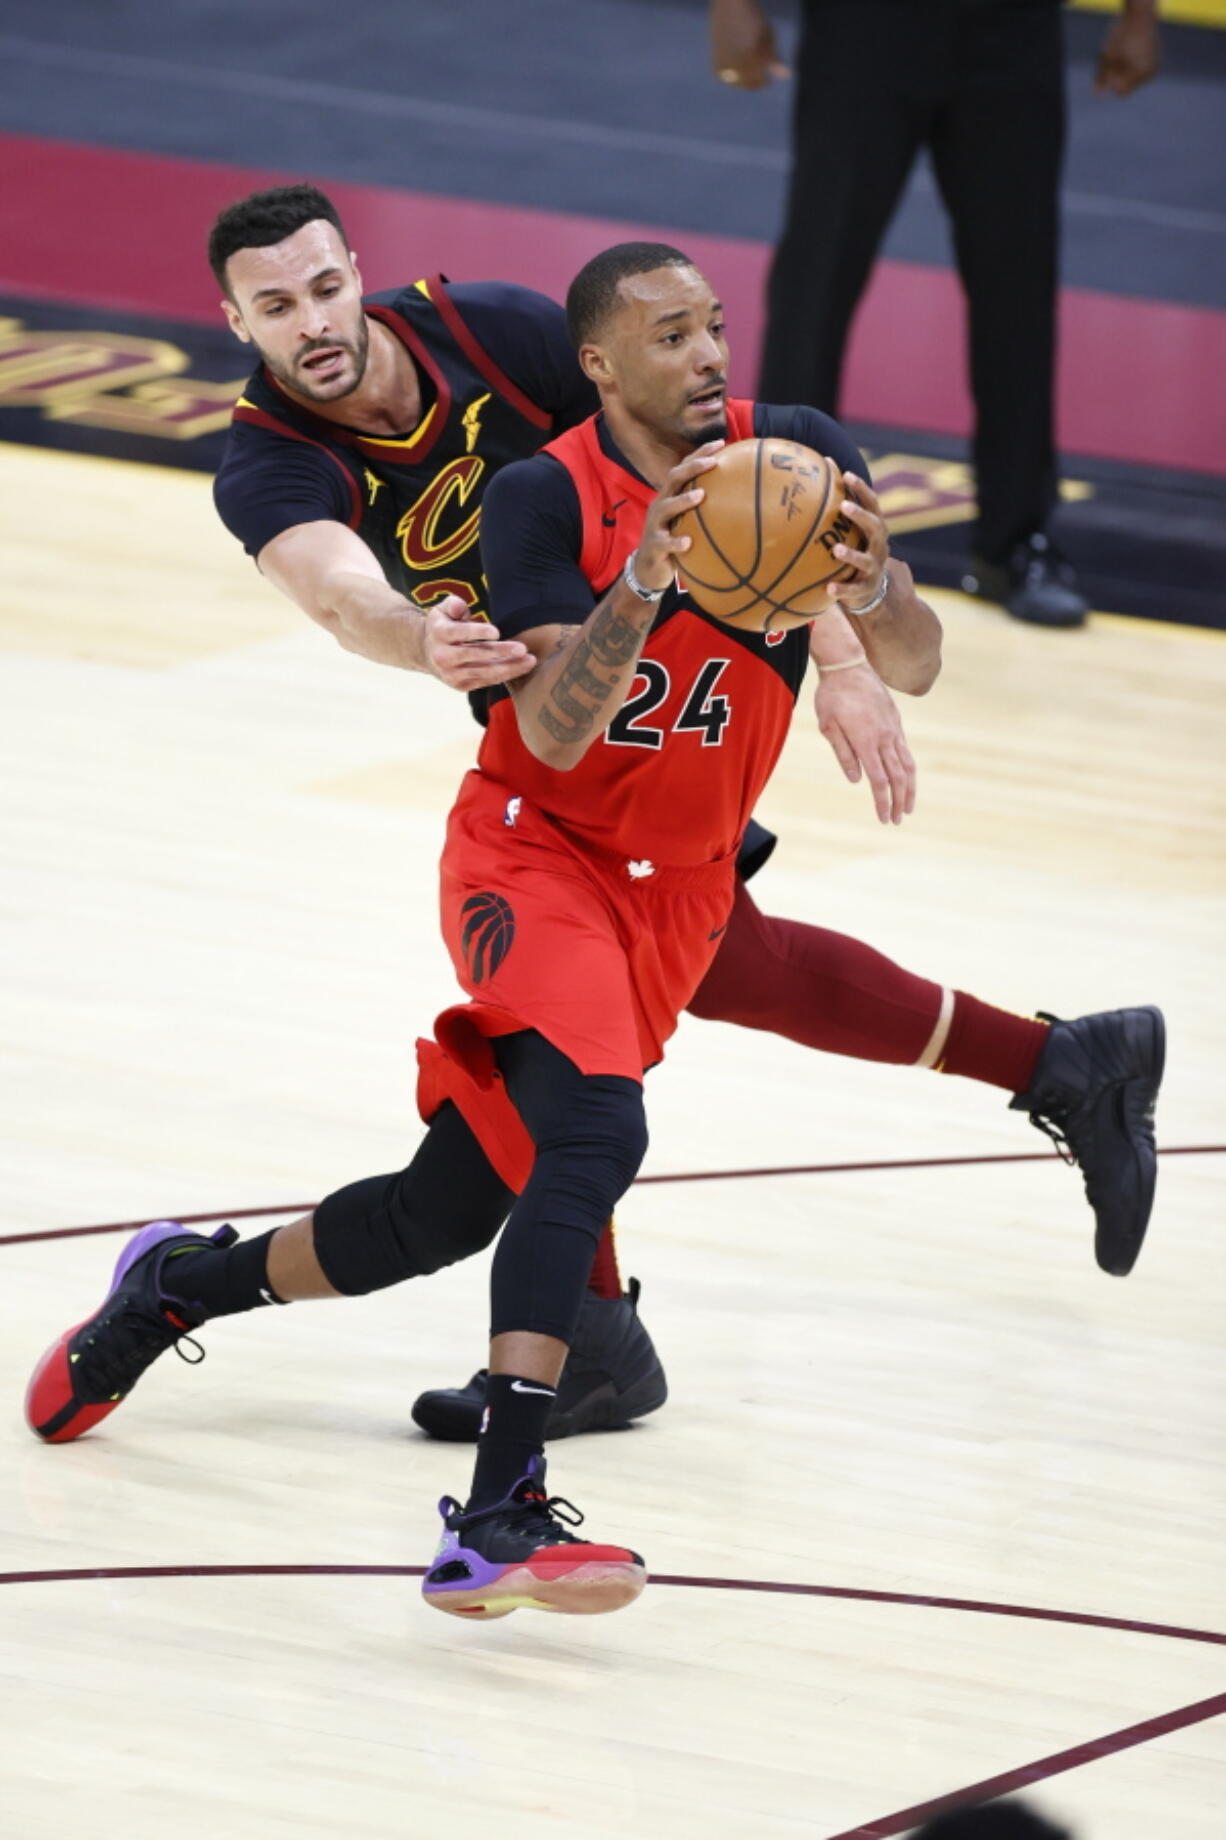 Toronto Raptors' Norman Powell (24) drives past Cleveland Cavaliers' Larry Nance Jr. (22) in the second half of an NBA basketball game, Sunday, March 21, 2021, in Cleveland.